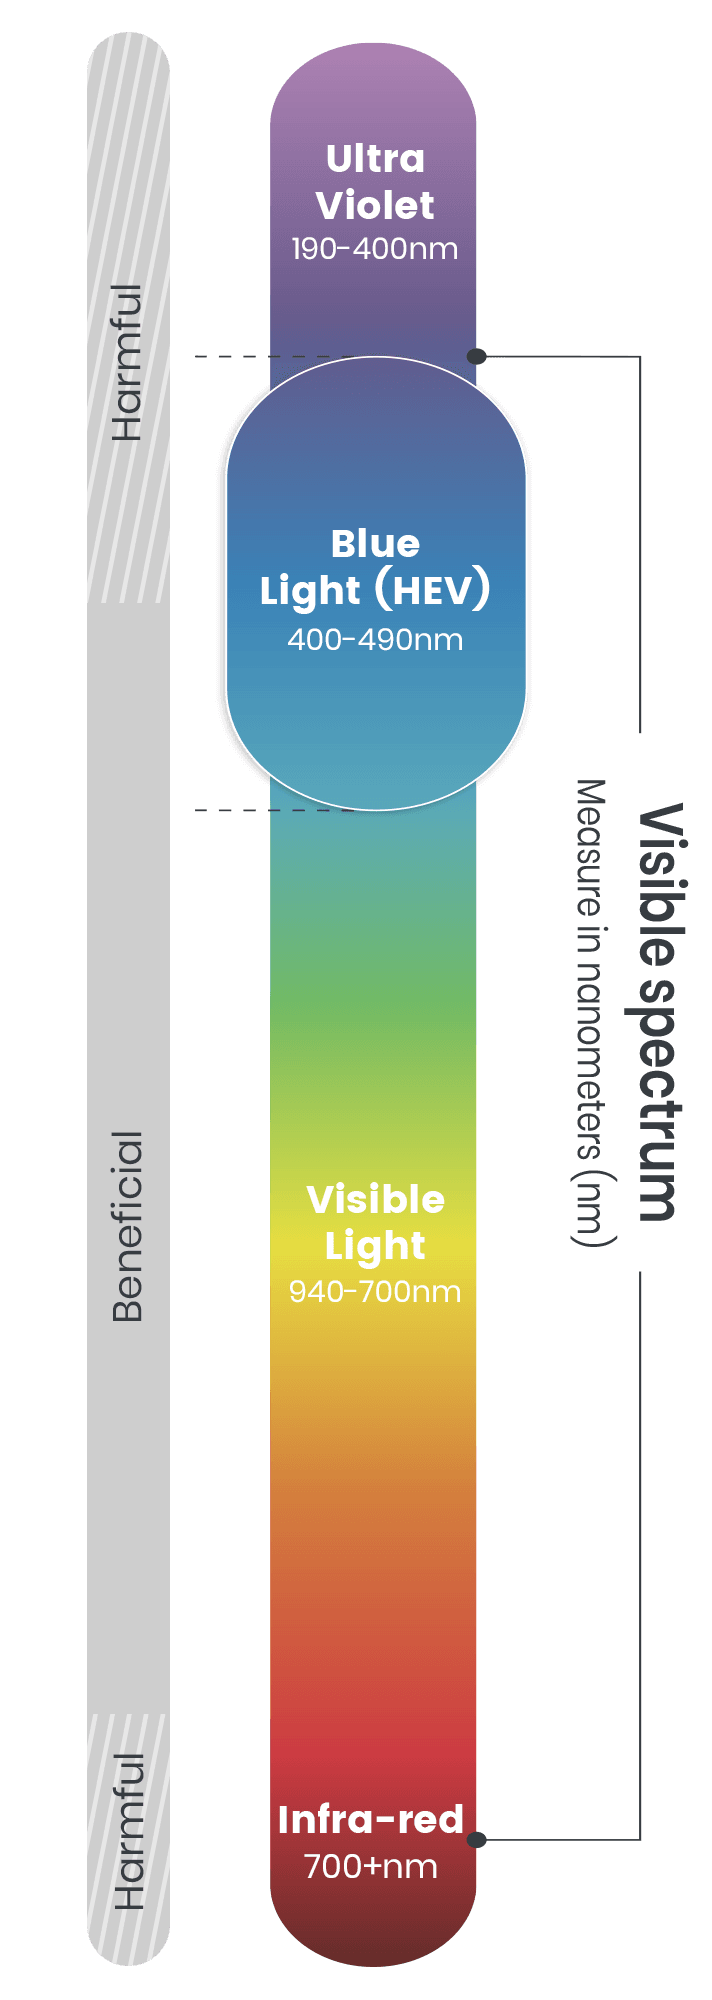 Visible light spectrum: ultra violet, blue light, visible light, infra-red